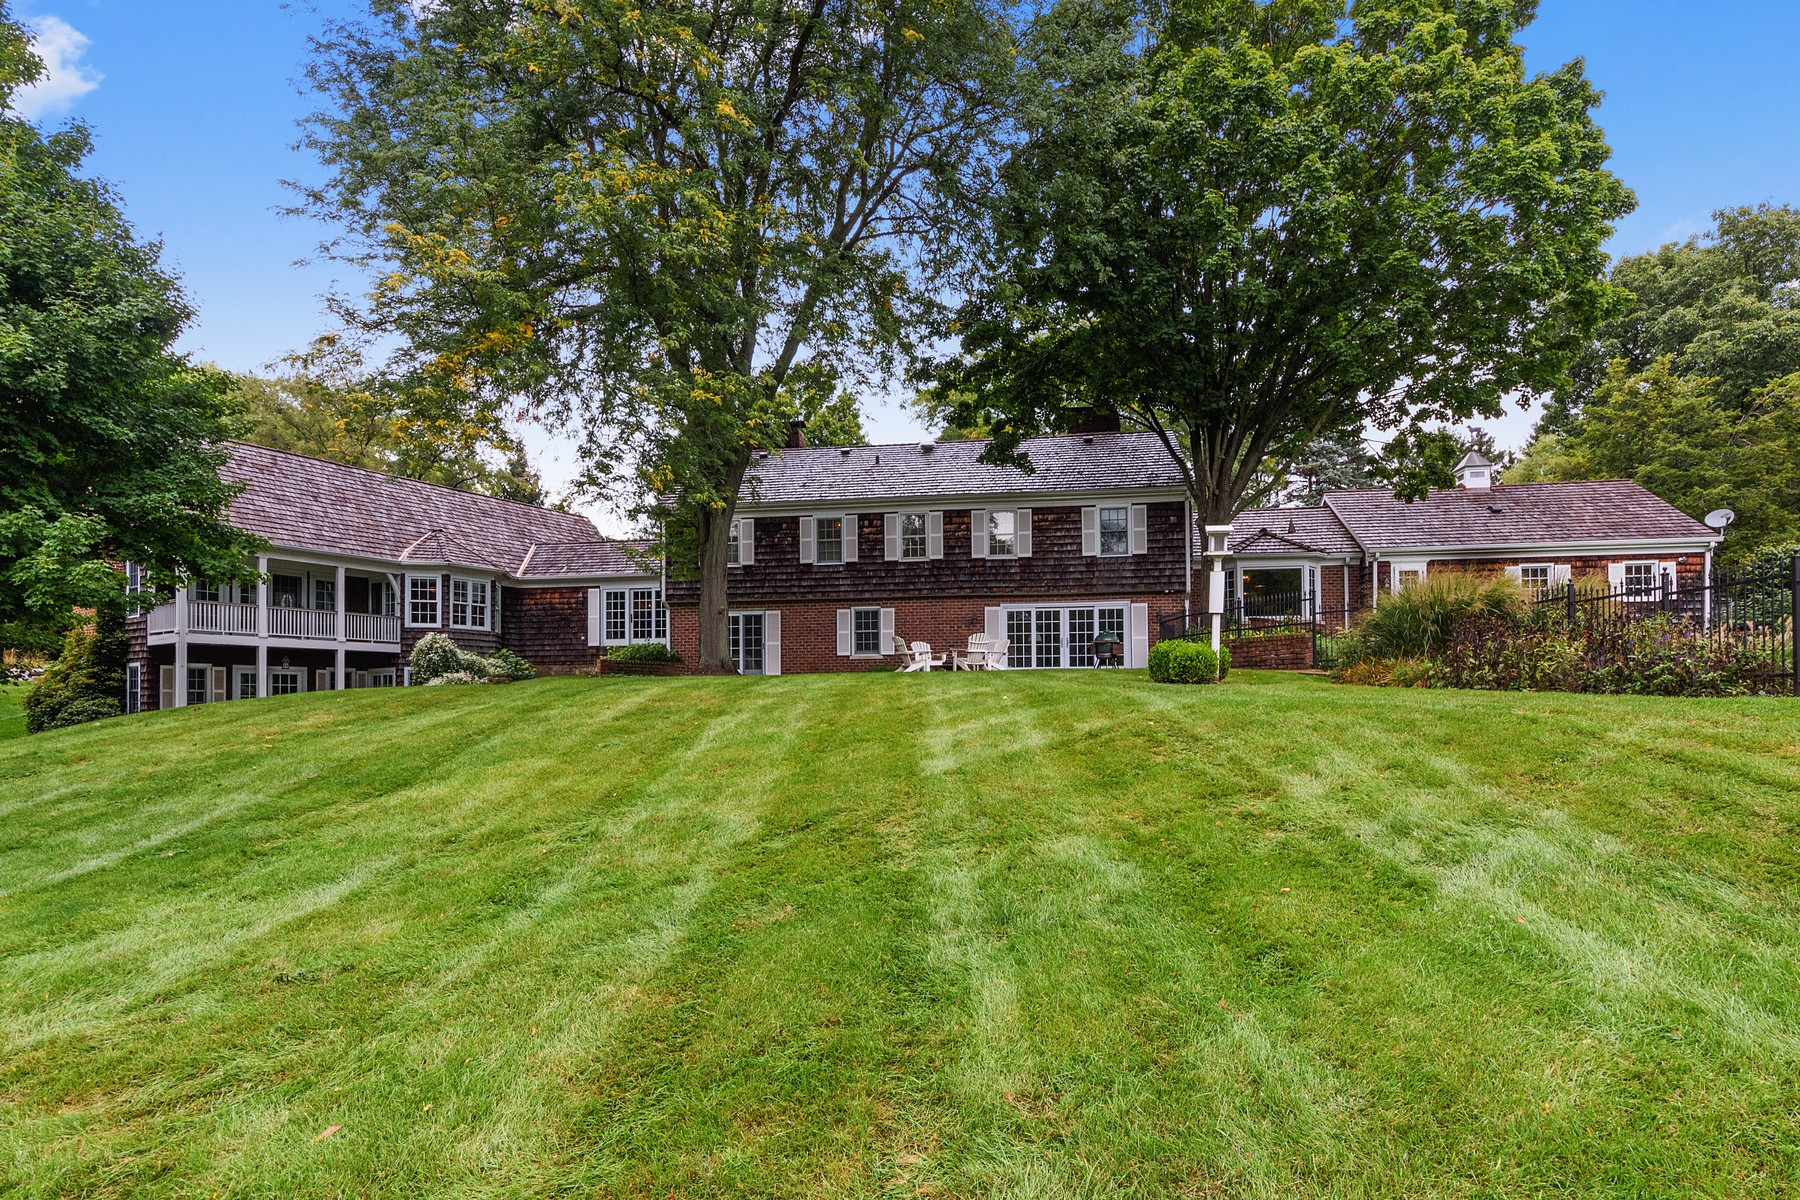 Additional photo for property listing at Country chic home 366 S Bateman Circle, Barrington Hills, Illinois 60010 Verenigde Staten